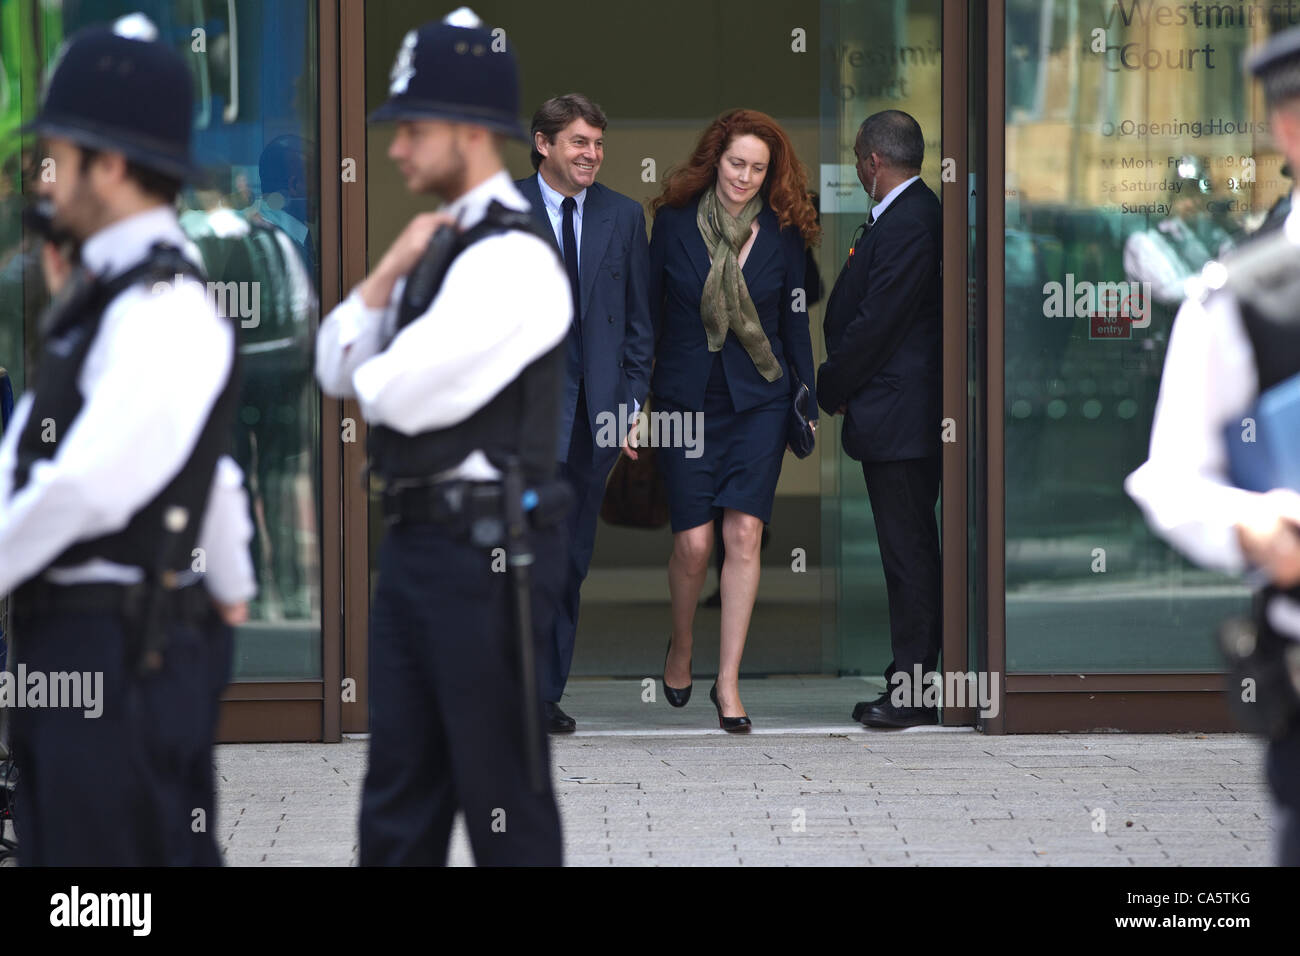 Westminster Magistrates, London, UK. 13.06.2012 Picture shows Rebekah Brooks 44-year-old former News of the World - Stock Image